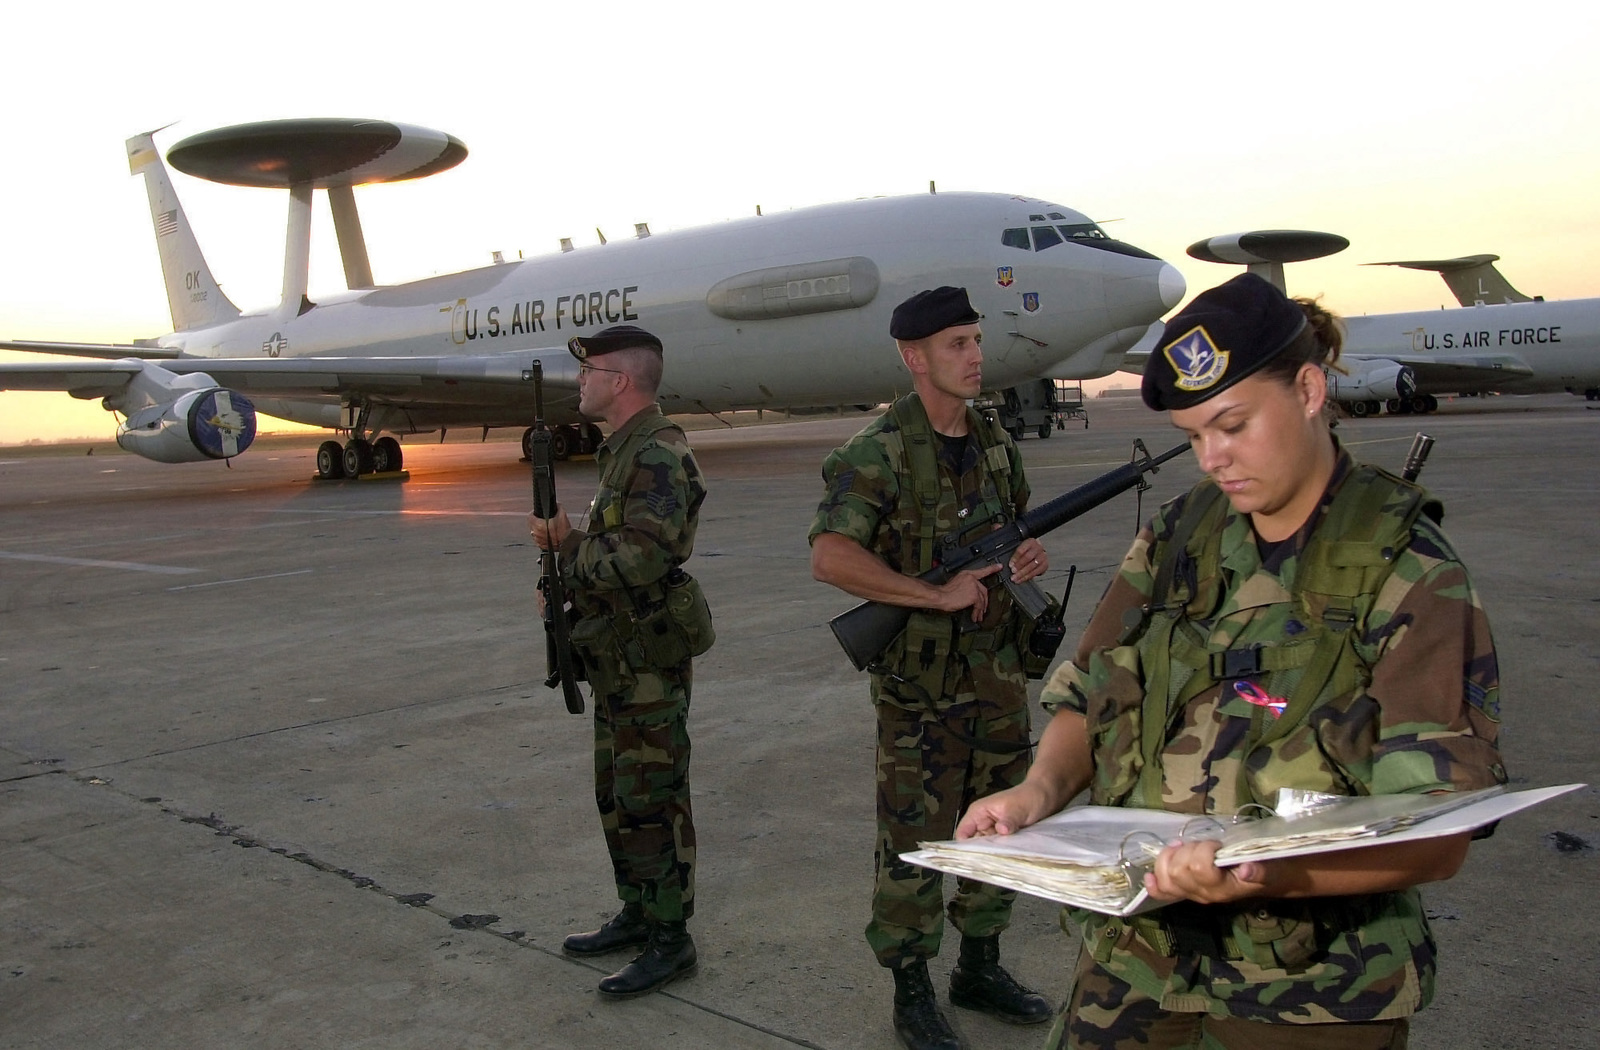 US Air Force (USAF) Security Police (SP) armed with 5.56mm M16A2 rifles guard USAF E-3C Sentry Airborne Early Warning and Control System (AWACS) aircraft, on the flight line at Incirlik Air Base (AB), Turkey, while deployed in support of Operation NORTHERN WATCH. Pictured left-to-right, USAF STAFF Sergeant (SSGT) John Duly, 175th Fighter Wing (FW); USAF SSGT Paul Evans, 172nd FW; and USAF AIRMAN First Class (A1C) Shelly Byers, 325th FW